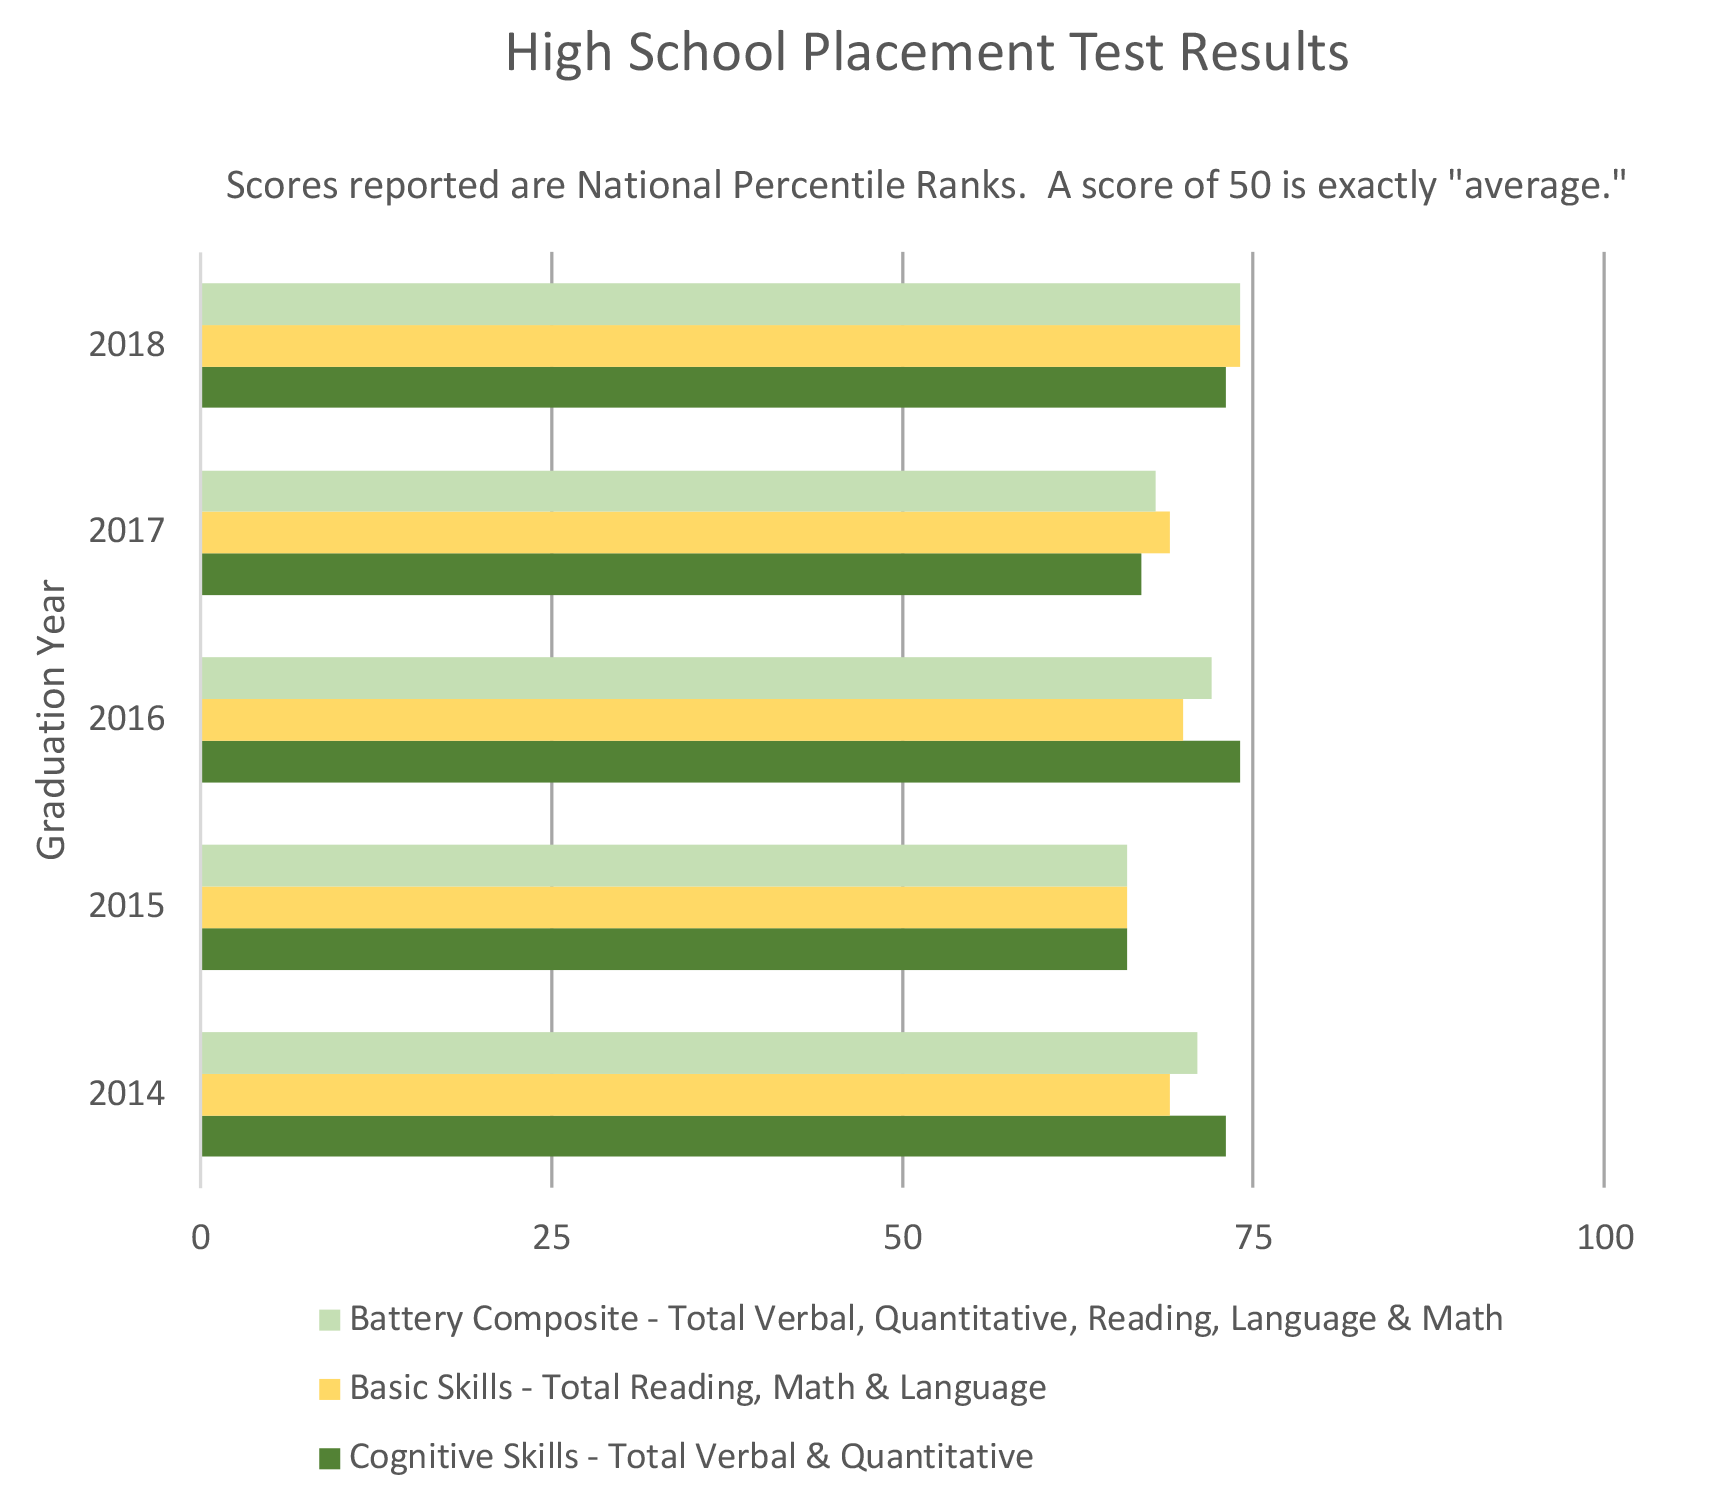 High School Placement Test Results